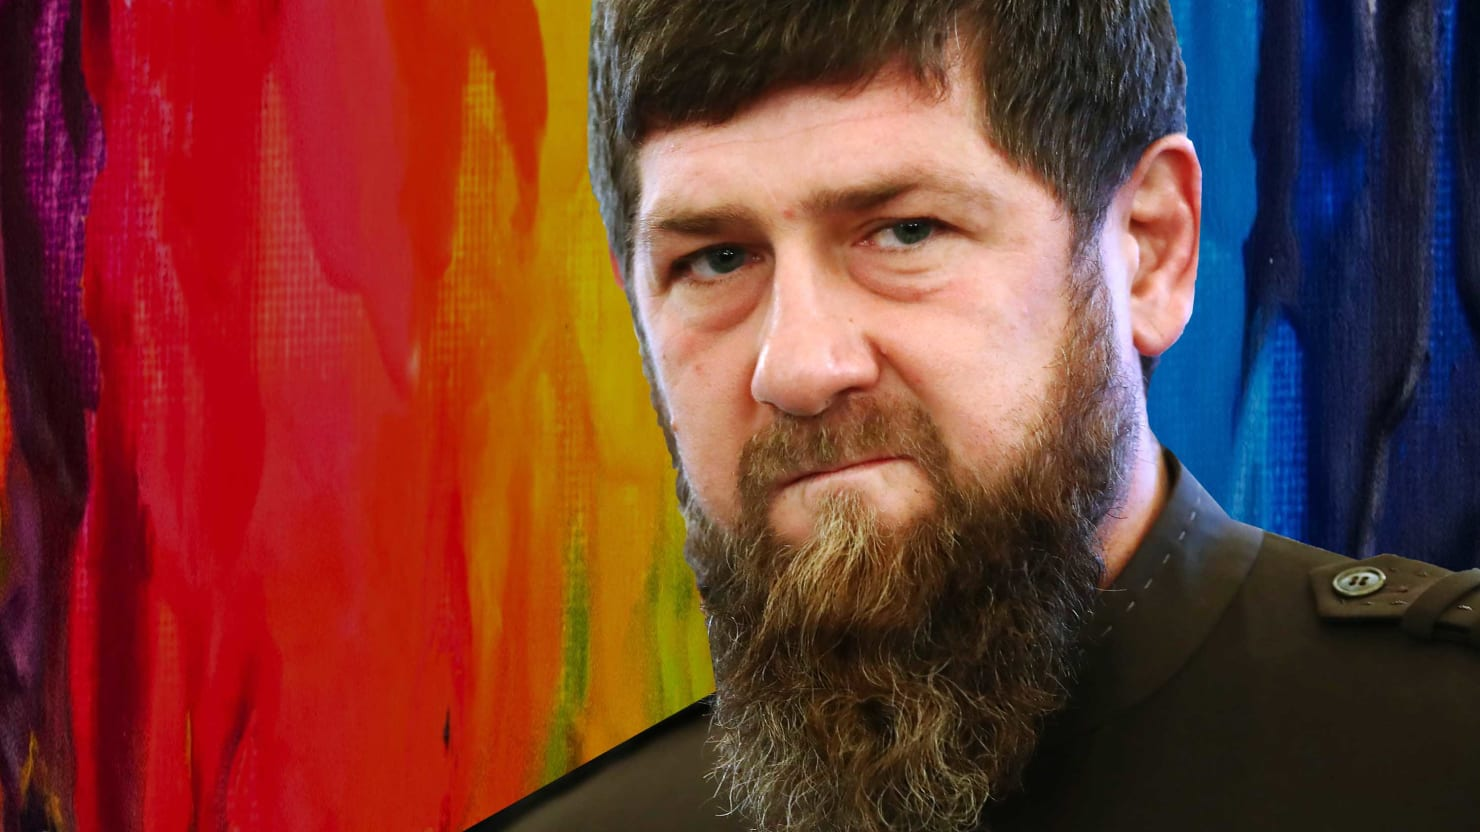 Activists: Chechen Authorities Demand Families Kill LGBT Family Members, Also Pay Ransoms